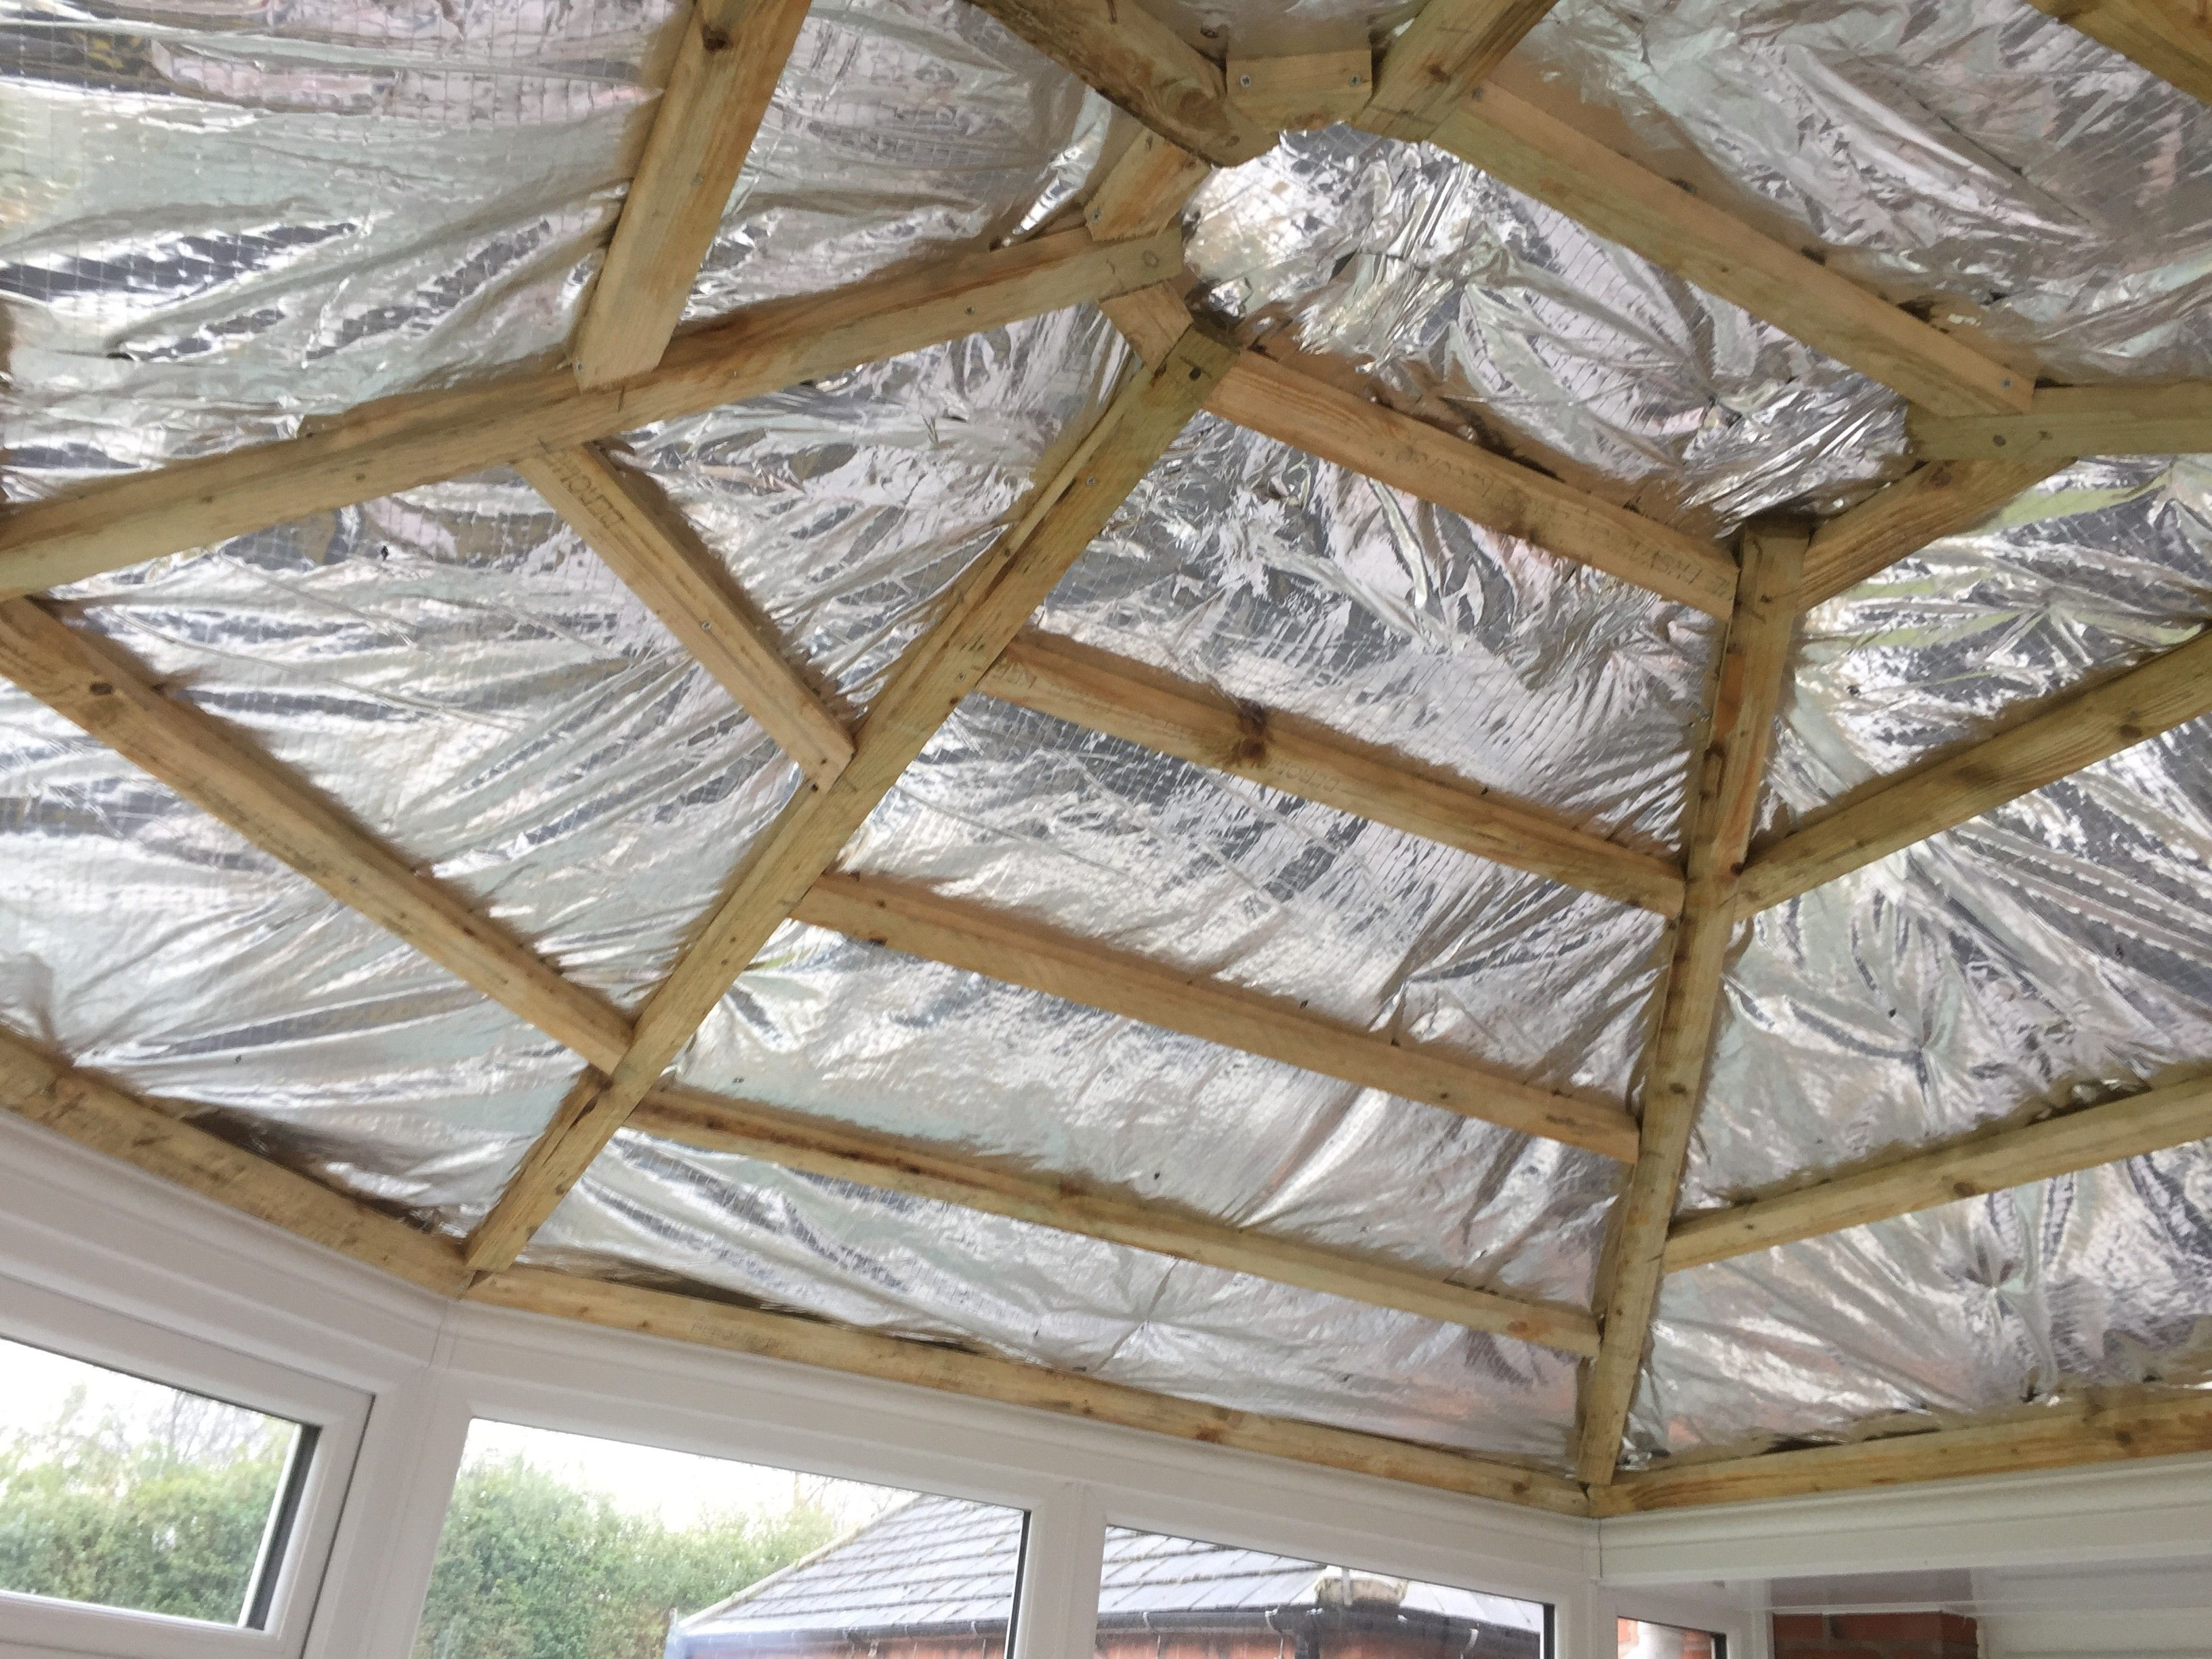 Pin By Krismarwood On Garden In 2020 With Images Aluminum Roof Panels Roof Panels Conservatory Roof